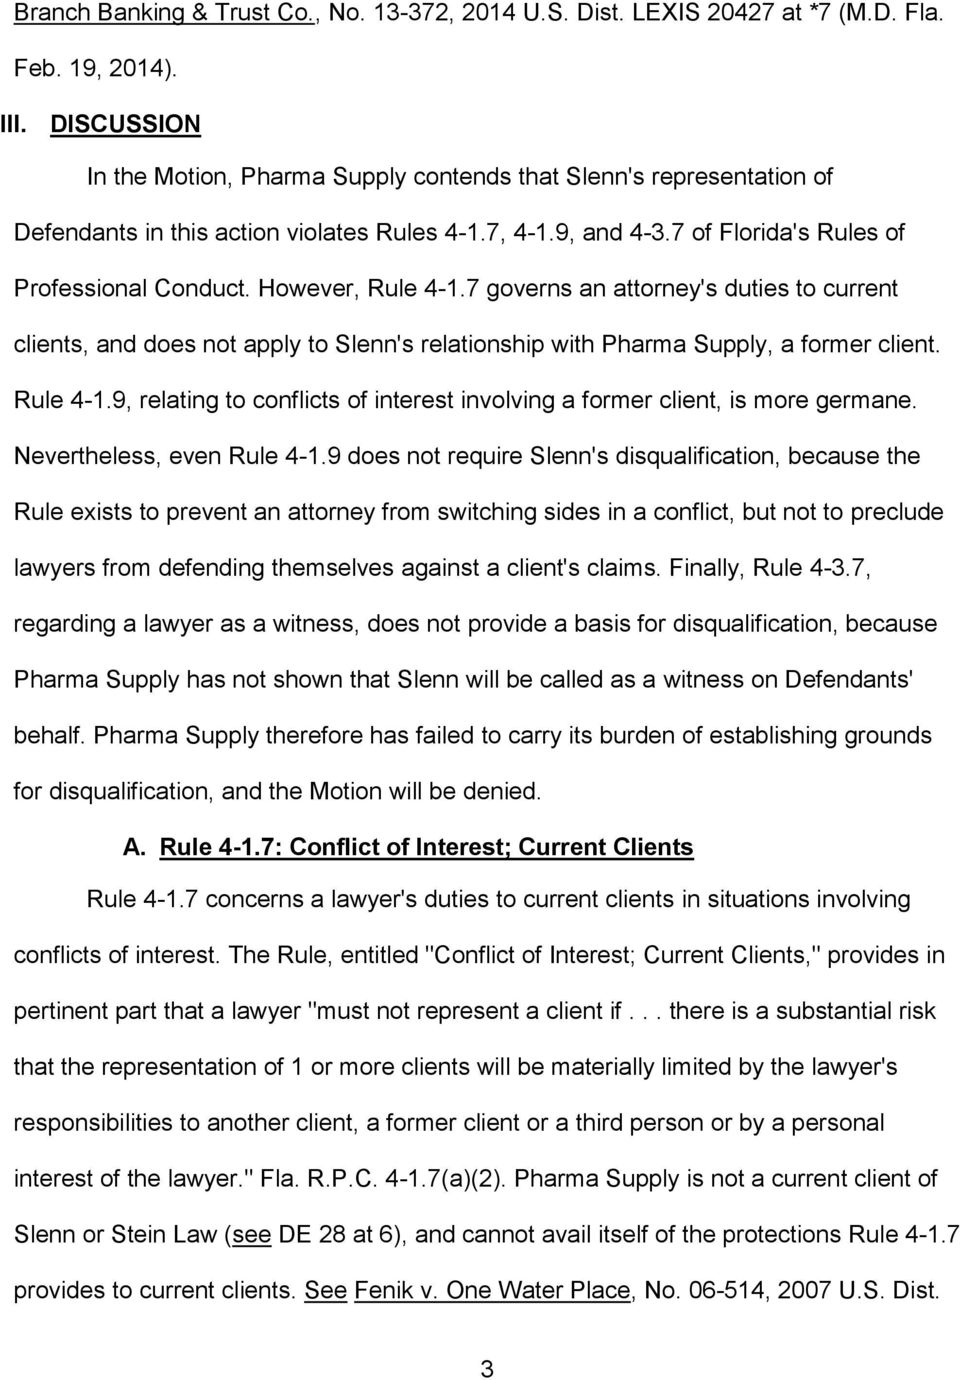 However, Rule 4-1.7 governs an attorney's duties to current clients, and does not apply to Slenn's relationship with Pharma Supply, a former client. Rule 4-1.9, relating to conflicts of interest involving a former client, is more germane.